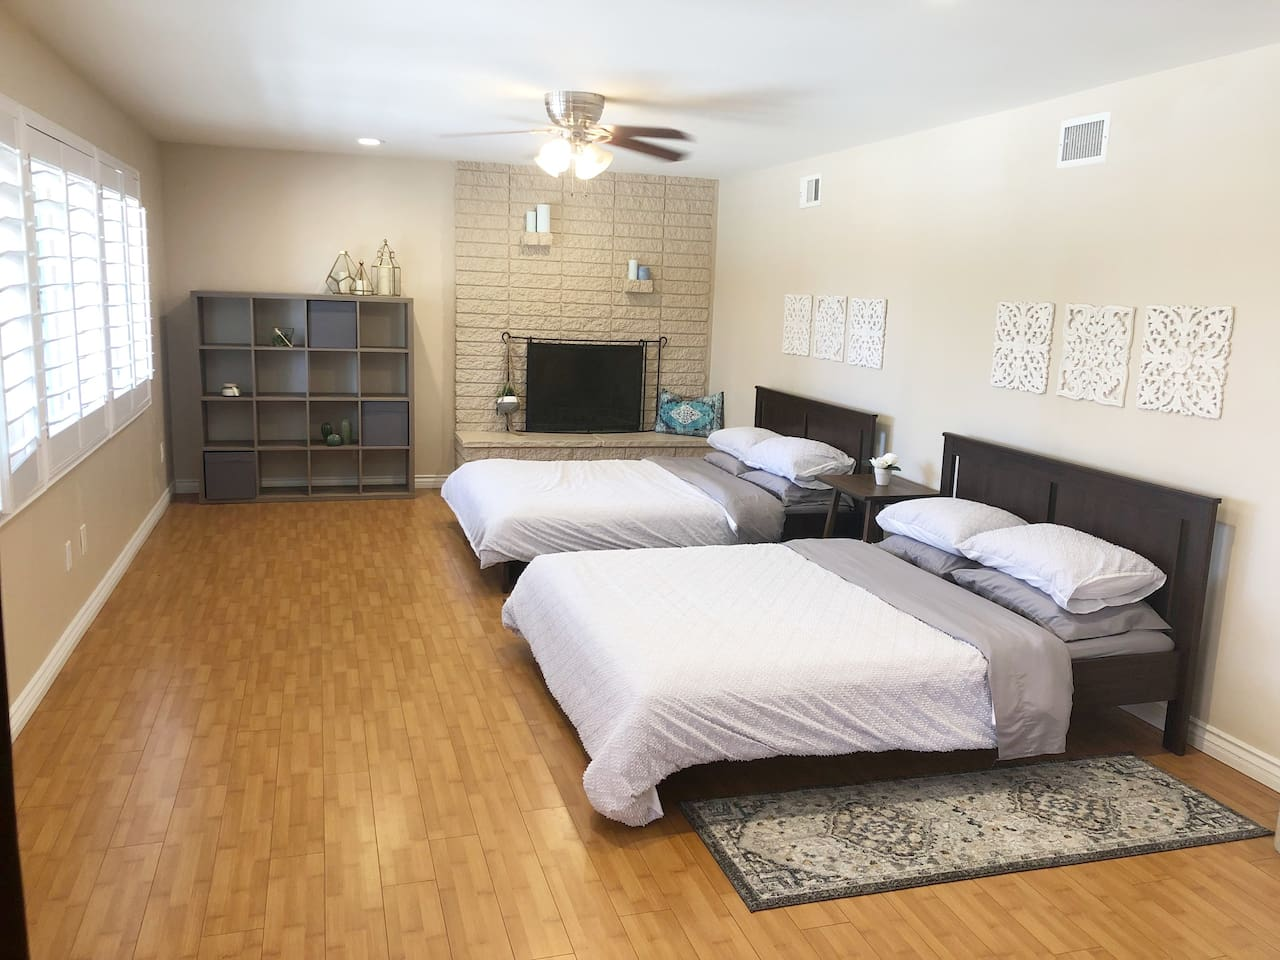 Two queen sized beds-sleeps four. Lots of natural light with plantation shutters.